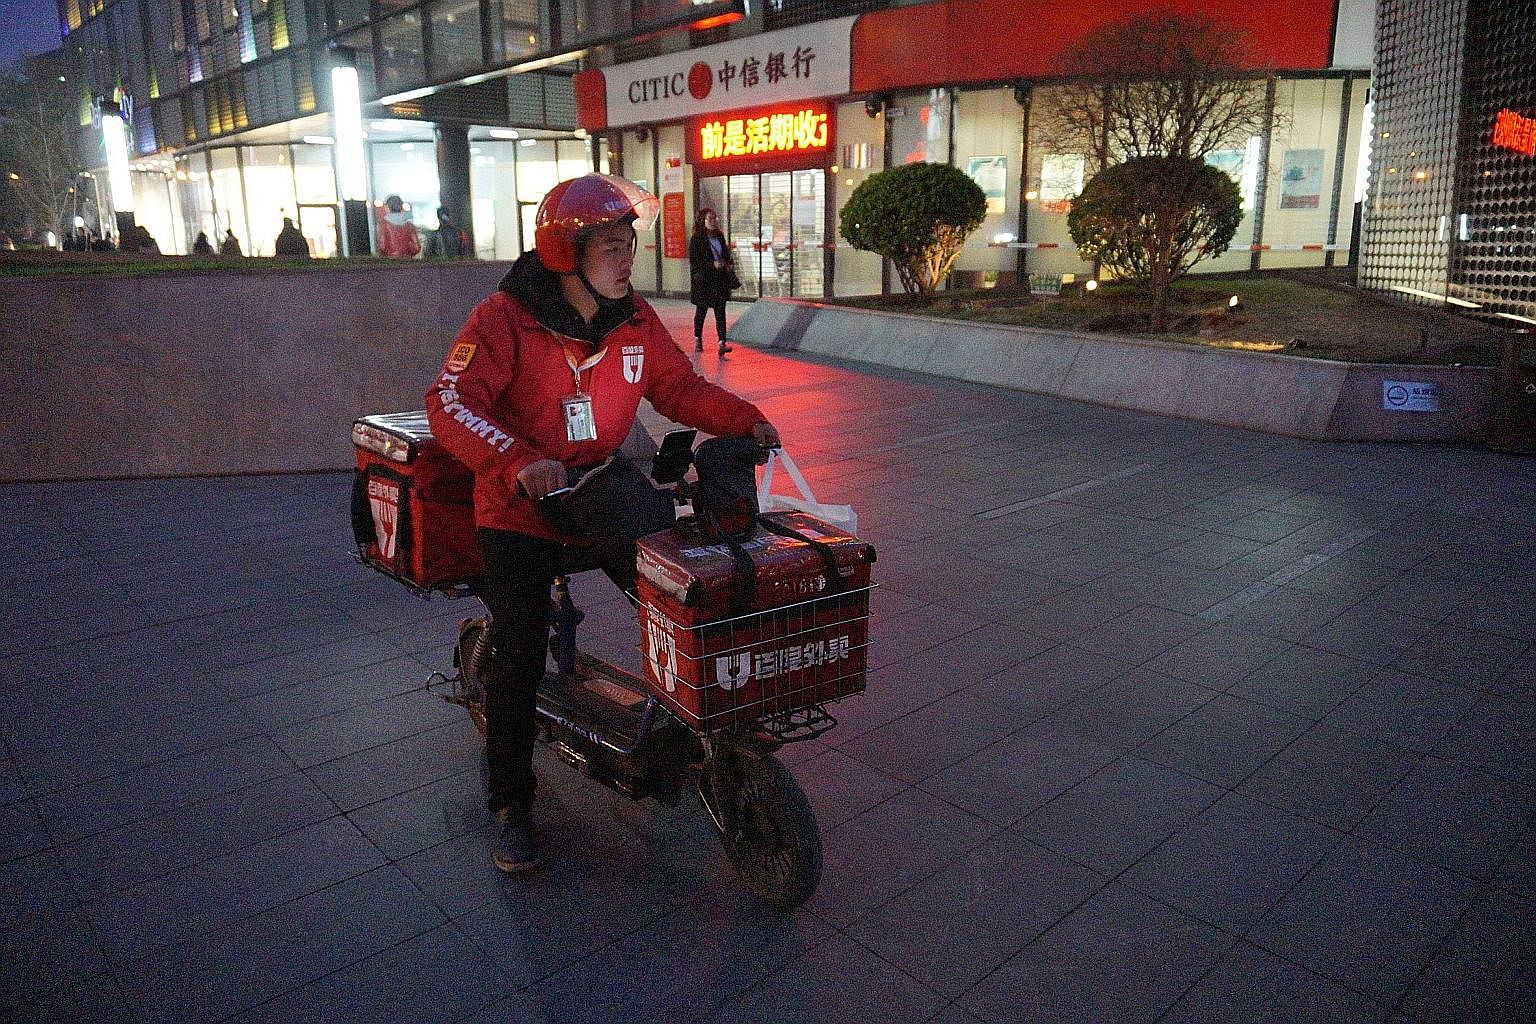 A deliveryman for Chinese food delivery service Baidu Waimai, which belongs to search giant Baidu. Asian technology firms could likely spread into multiple segments and benefit from network effects, such as Chinese Internet firms diversifying into ar